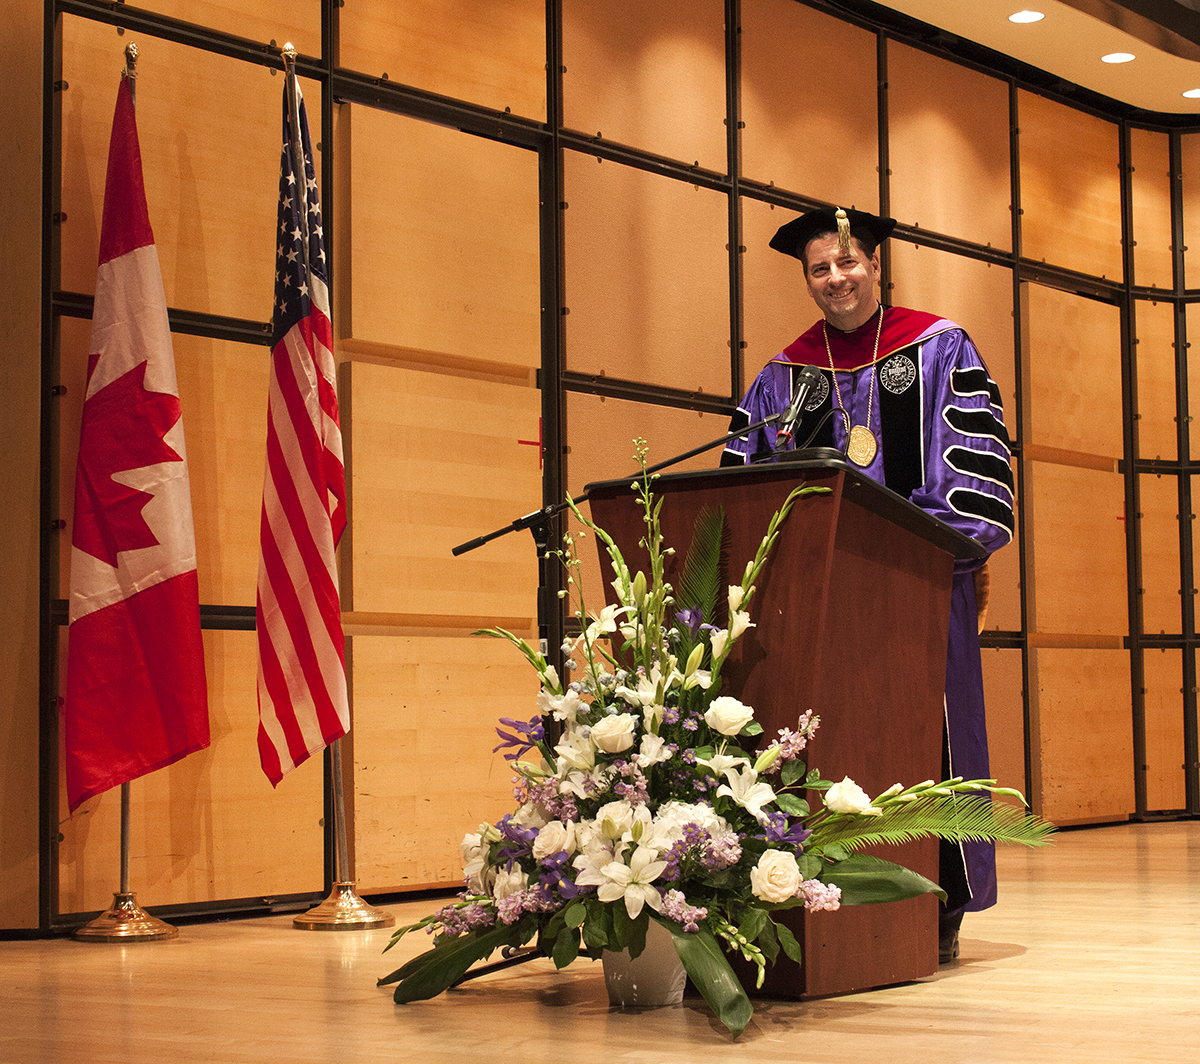 Niagara University Holds 11th Commencement in Ontario